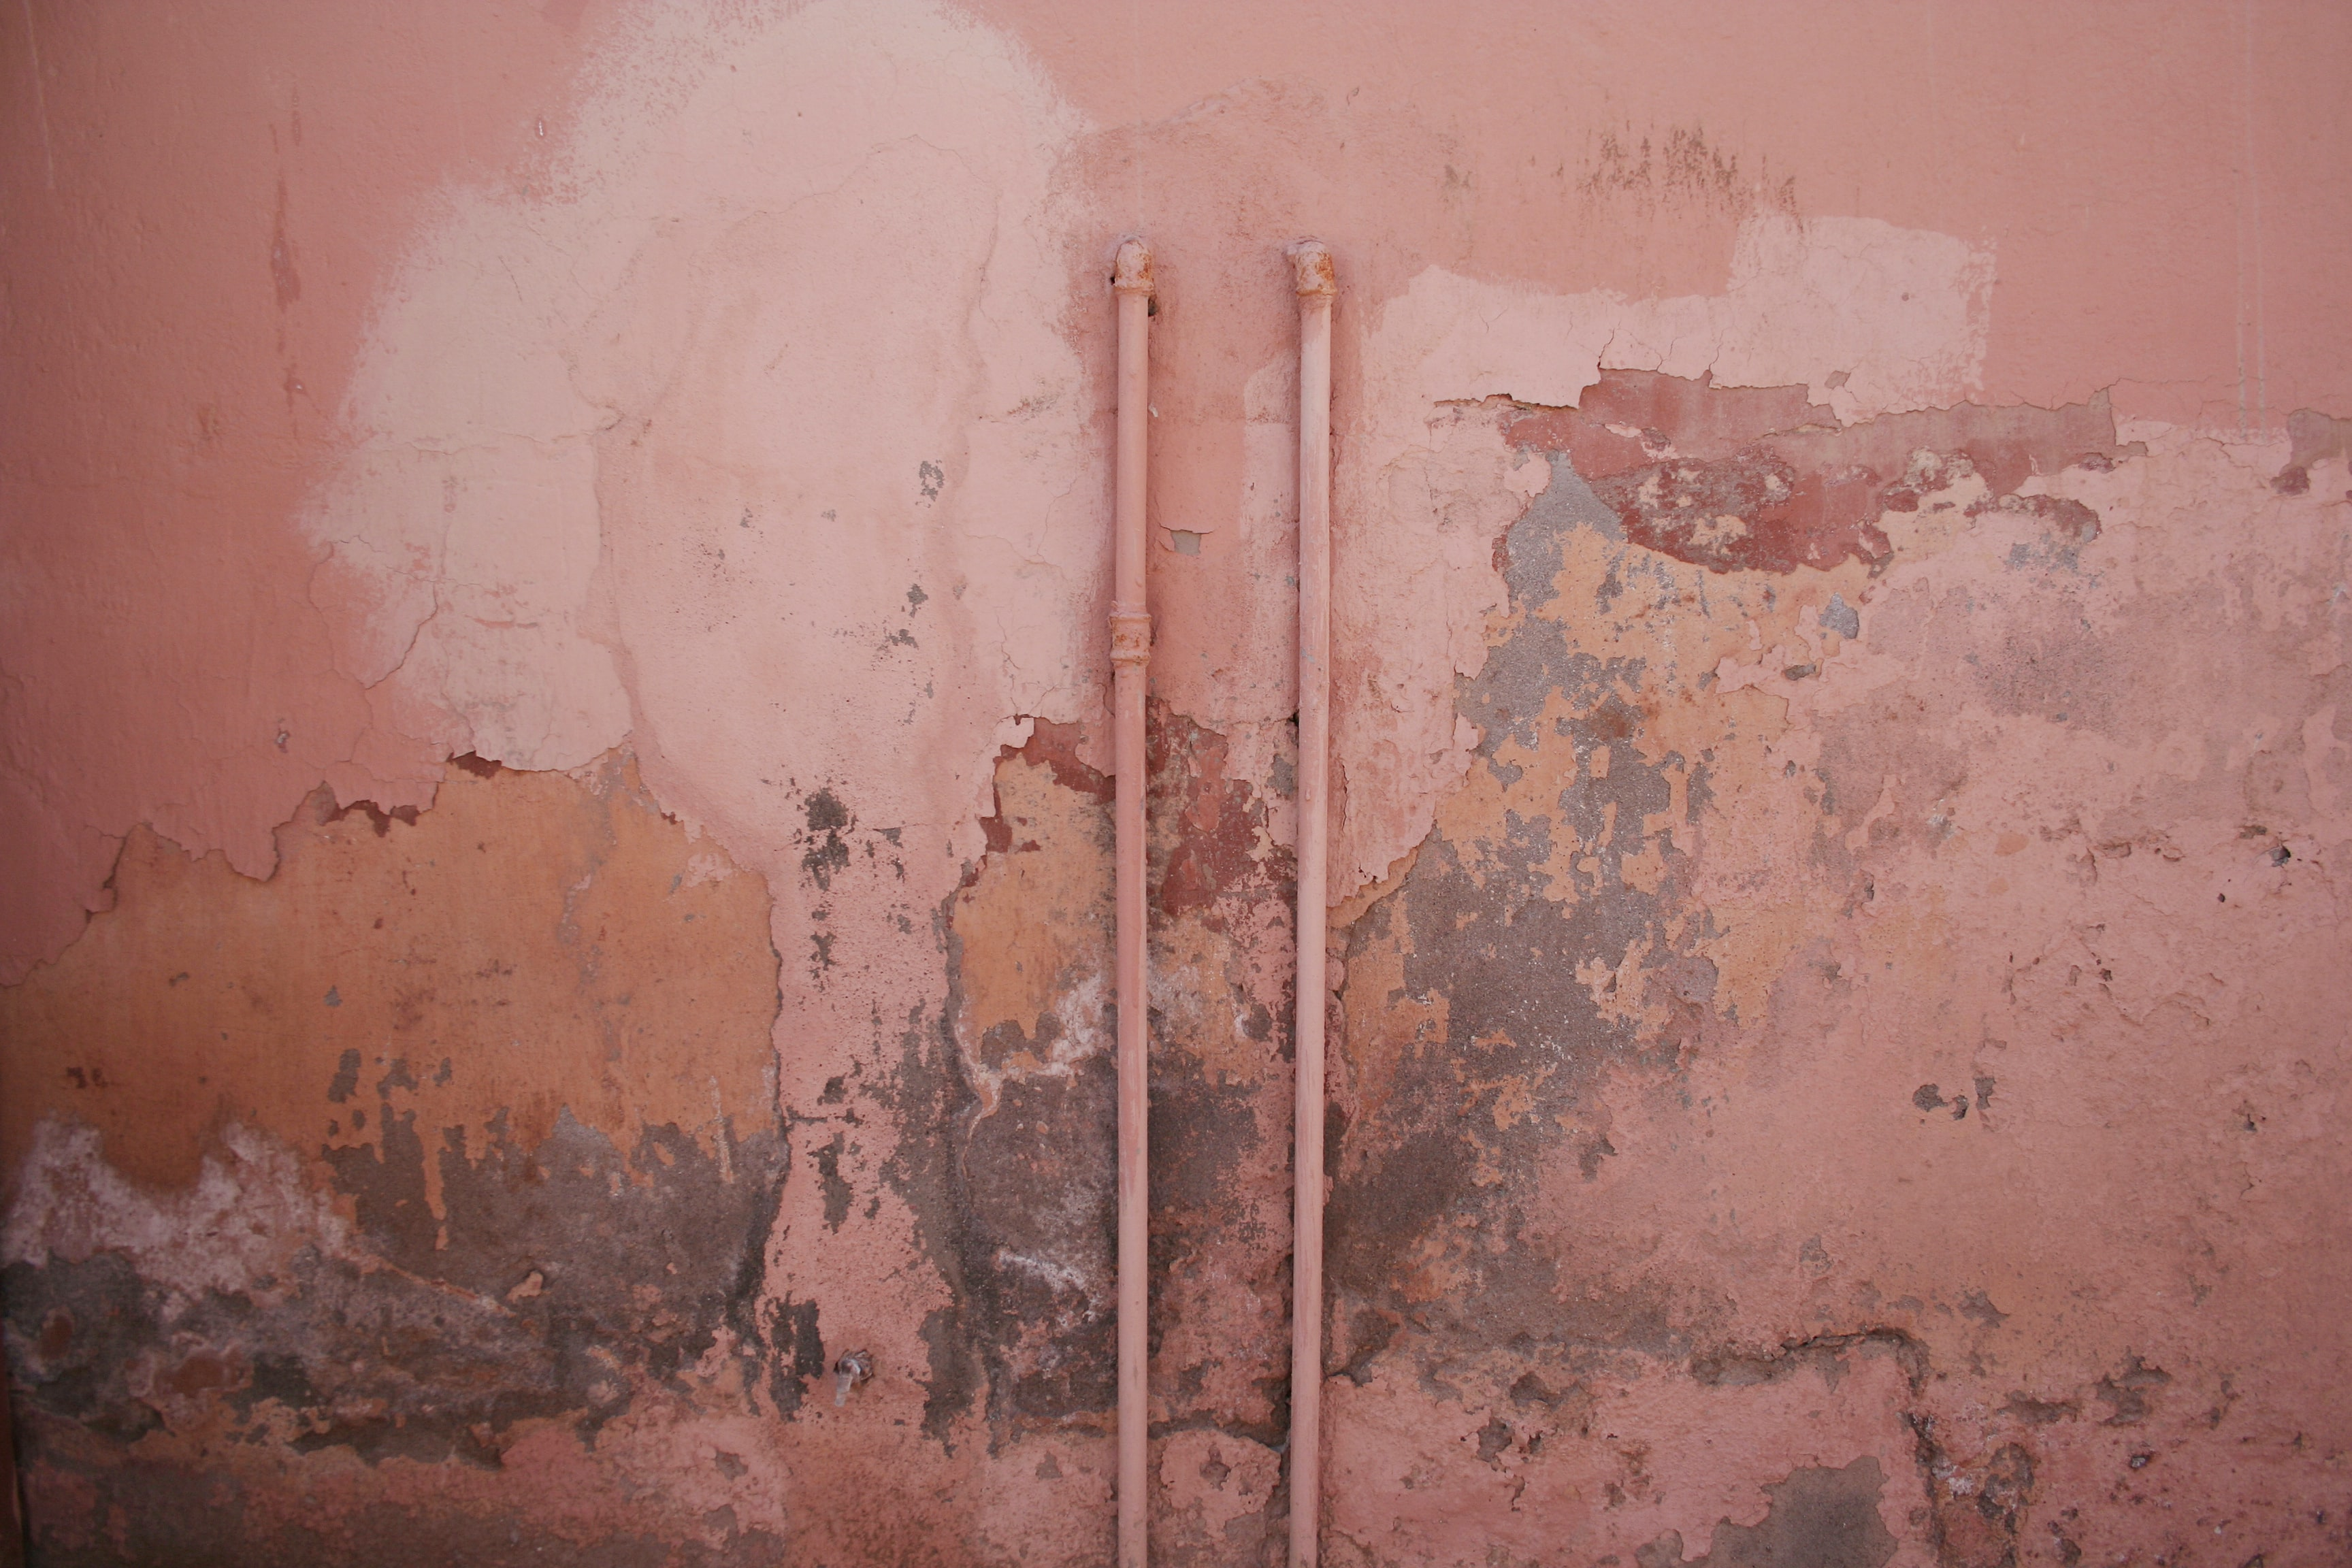 A pink dilapidated wall and pipe in Marrakech